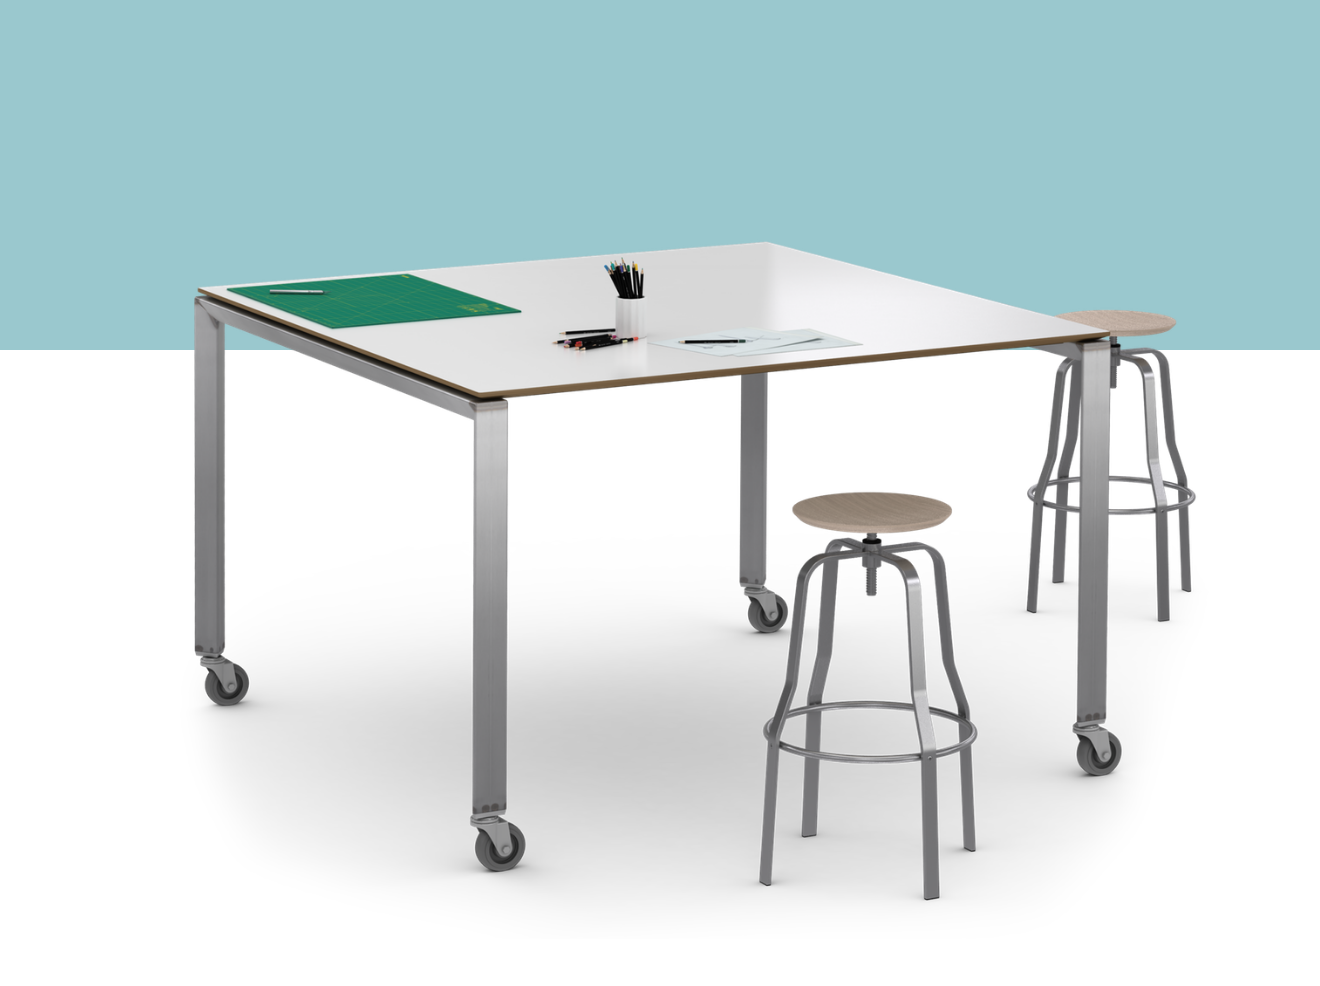 Artsy Meeting Table By Watson Meeting Table Office Table Desk Office Table [ png ]